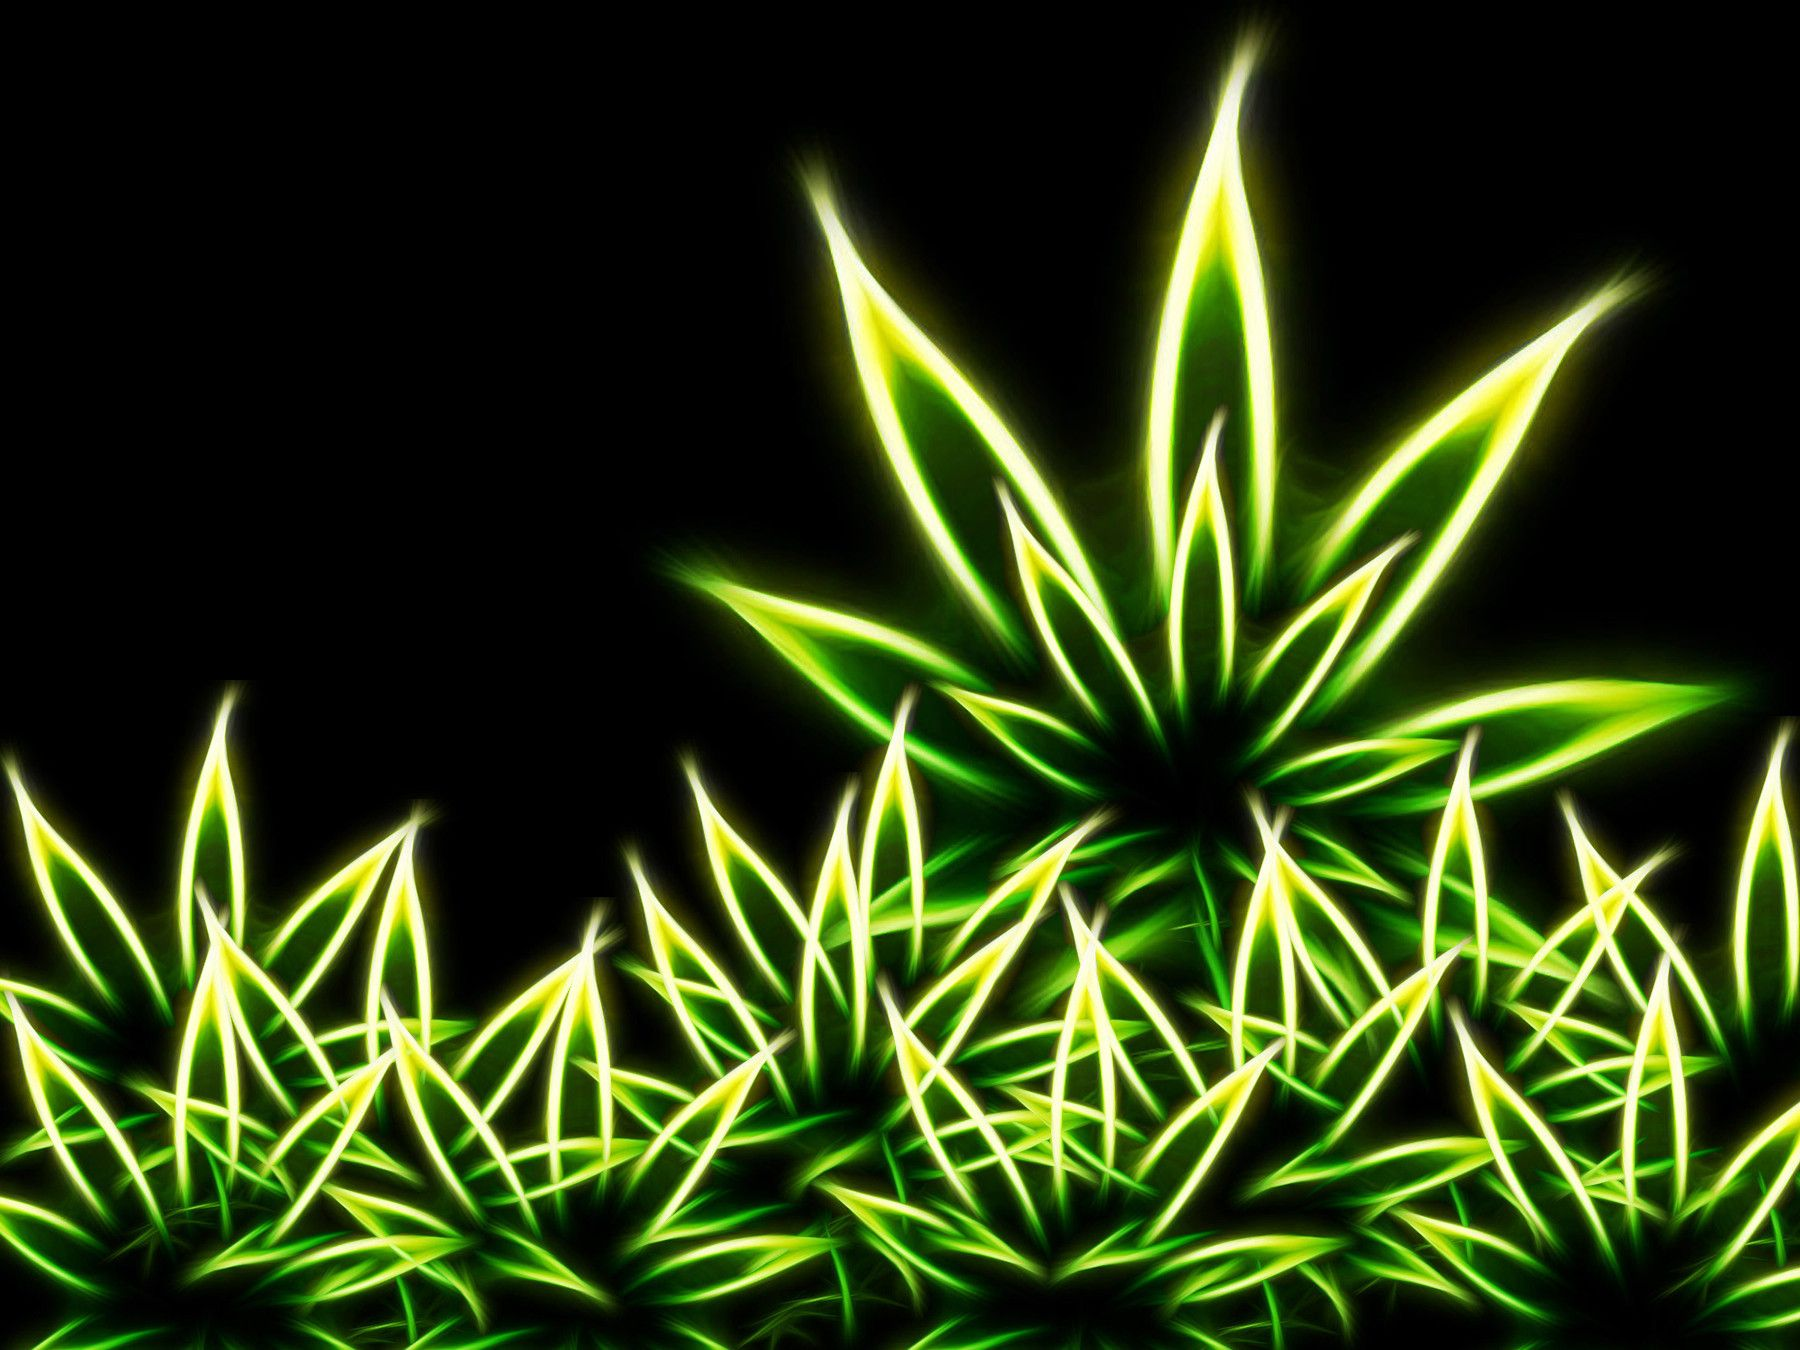 Weed Wallpapers HD Free download   Wallpapers, Backgrounds, Images ...   wallpapers I like ...